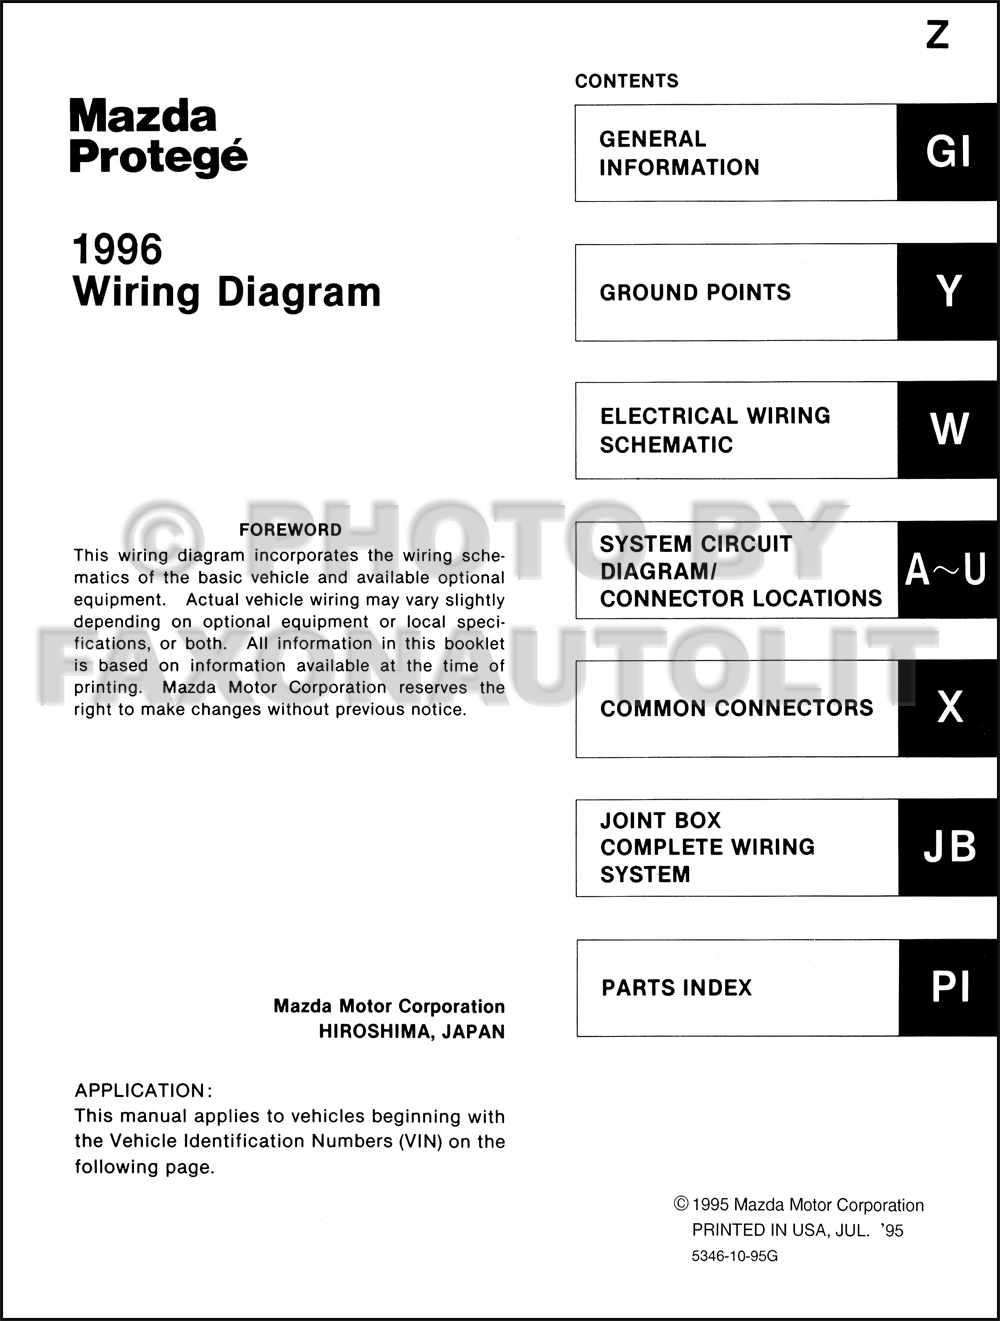 1996 mazda protege wiring diagram manual original mazda protege stereo wiring diagrams color coded color coded stereo wiring diagrams #9